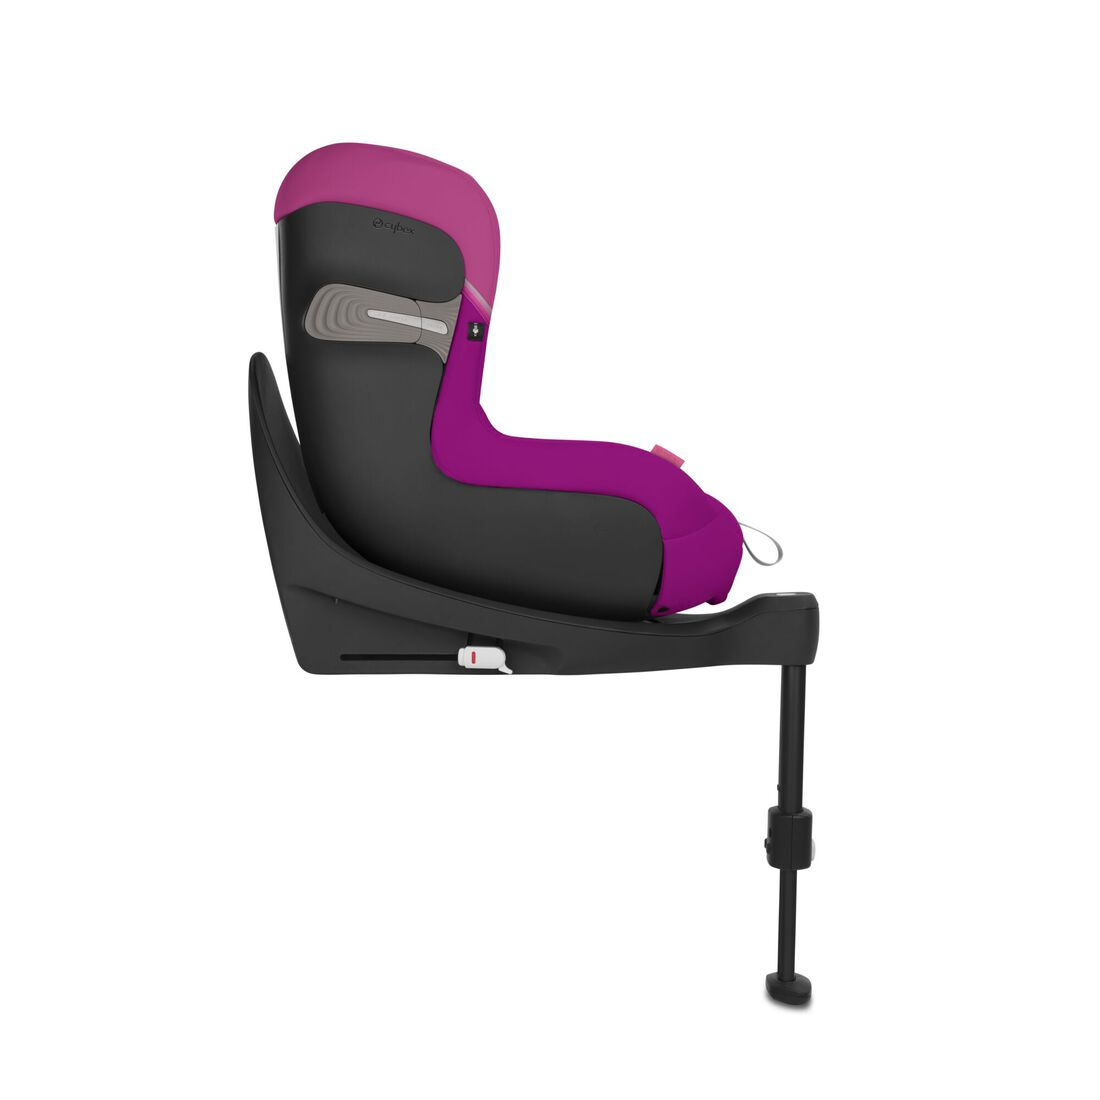 CYBEX Sirona SX2 i-Size - Magnolia Pink in Magnolia Pink large image number 4